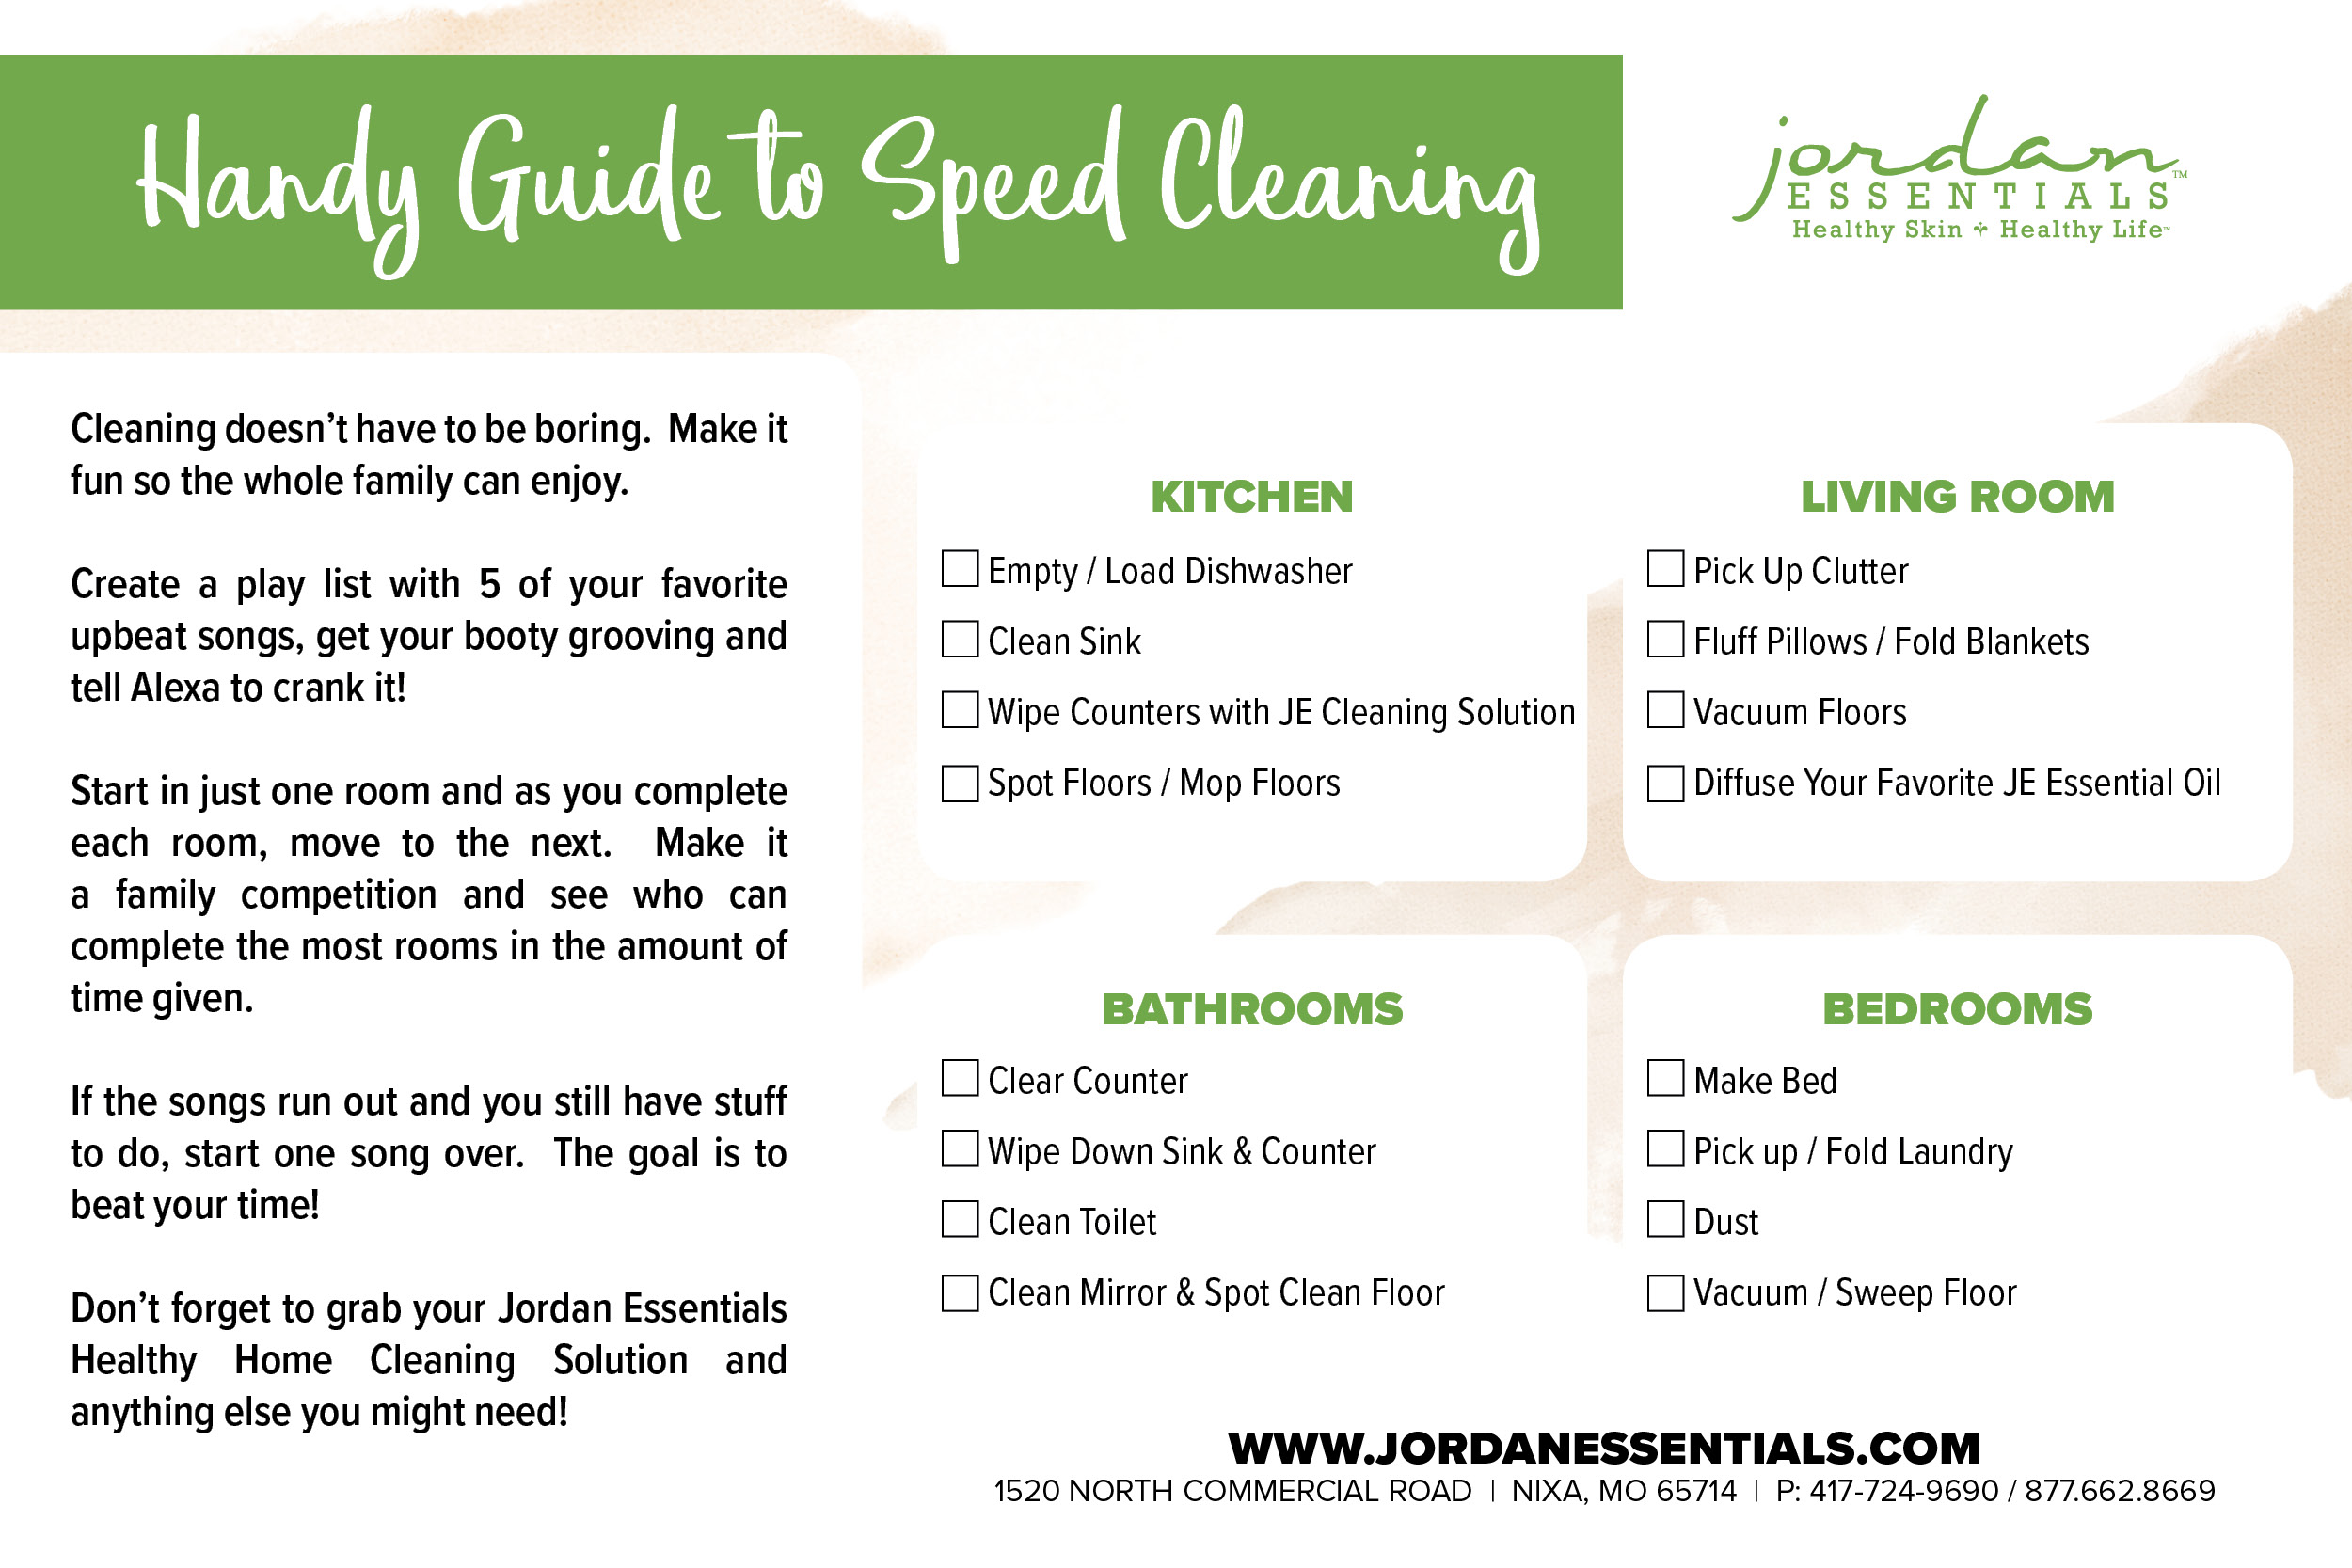 Download JE's Speedy Cleaning Guide to gain your saturdays back!